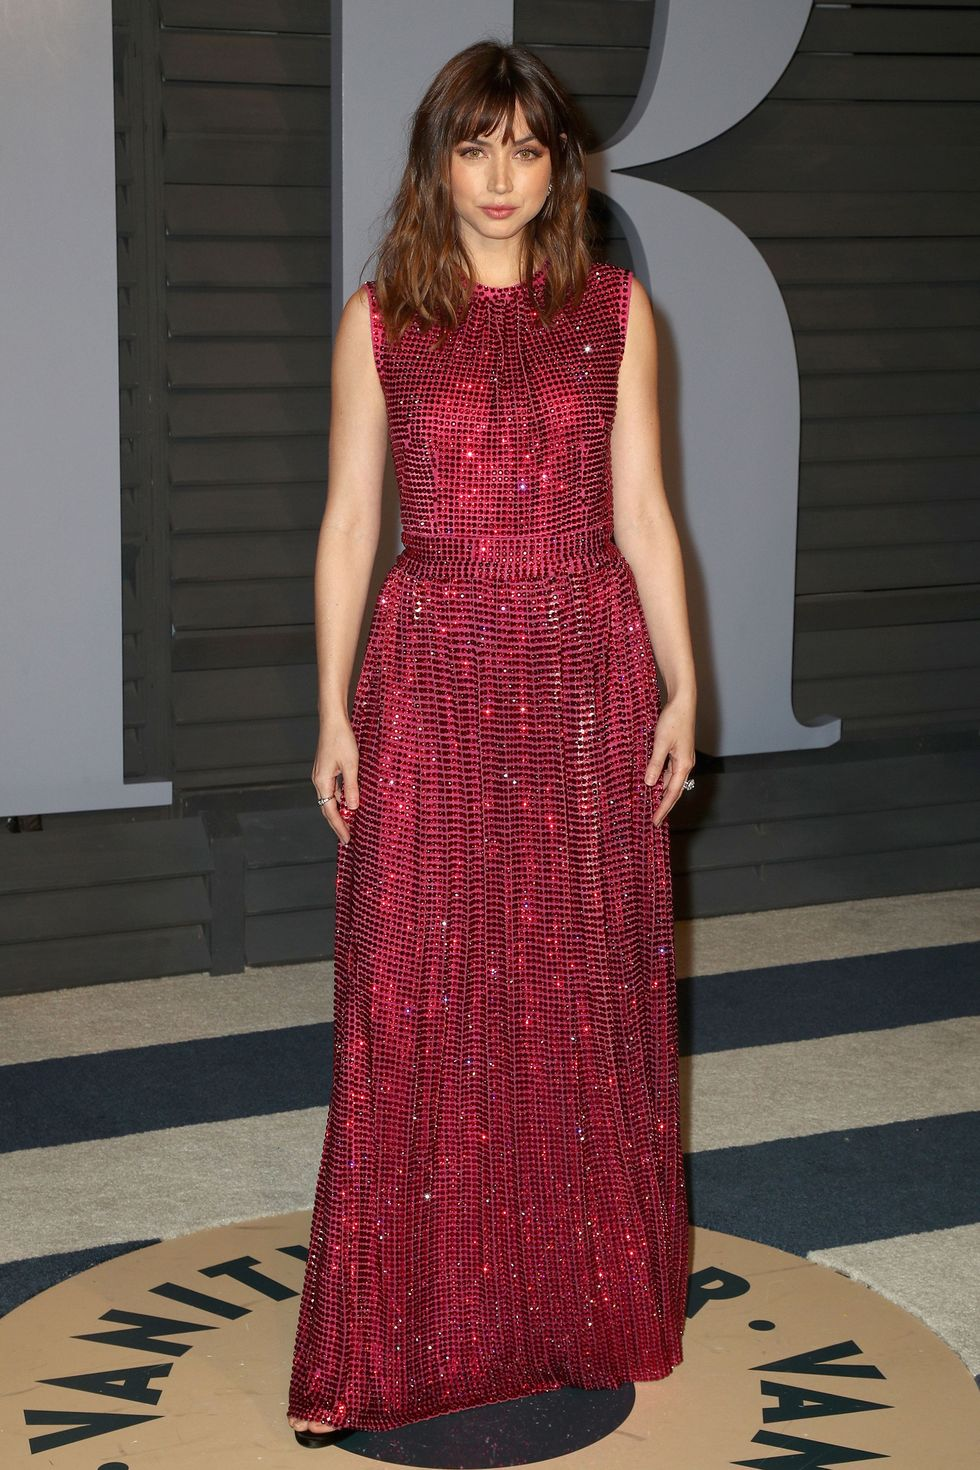 Ana De Armas at Vanity Fair event in red dress by Frederick M. Brown Getty Images